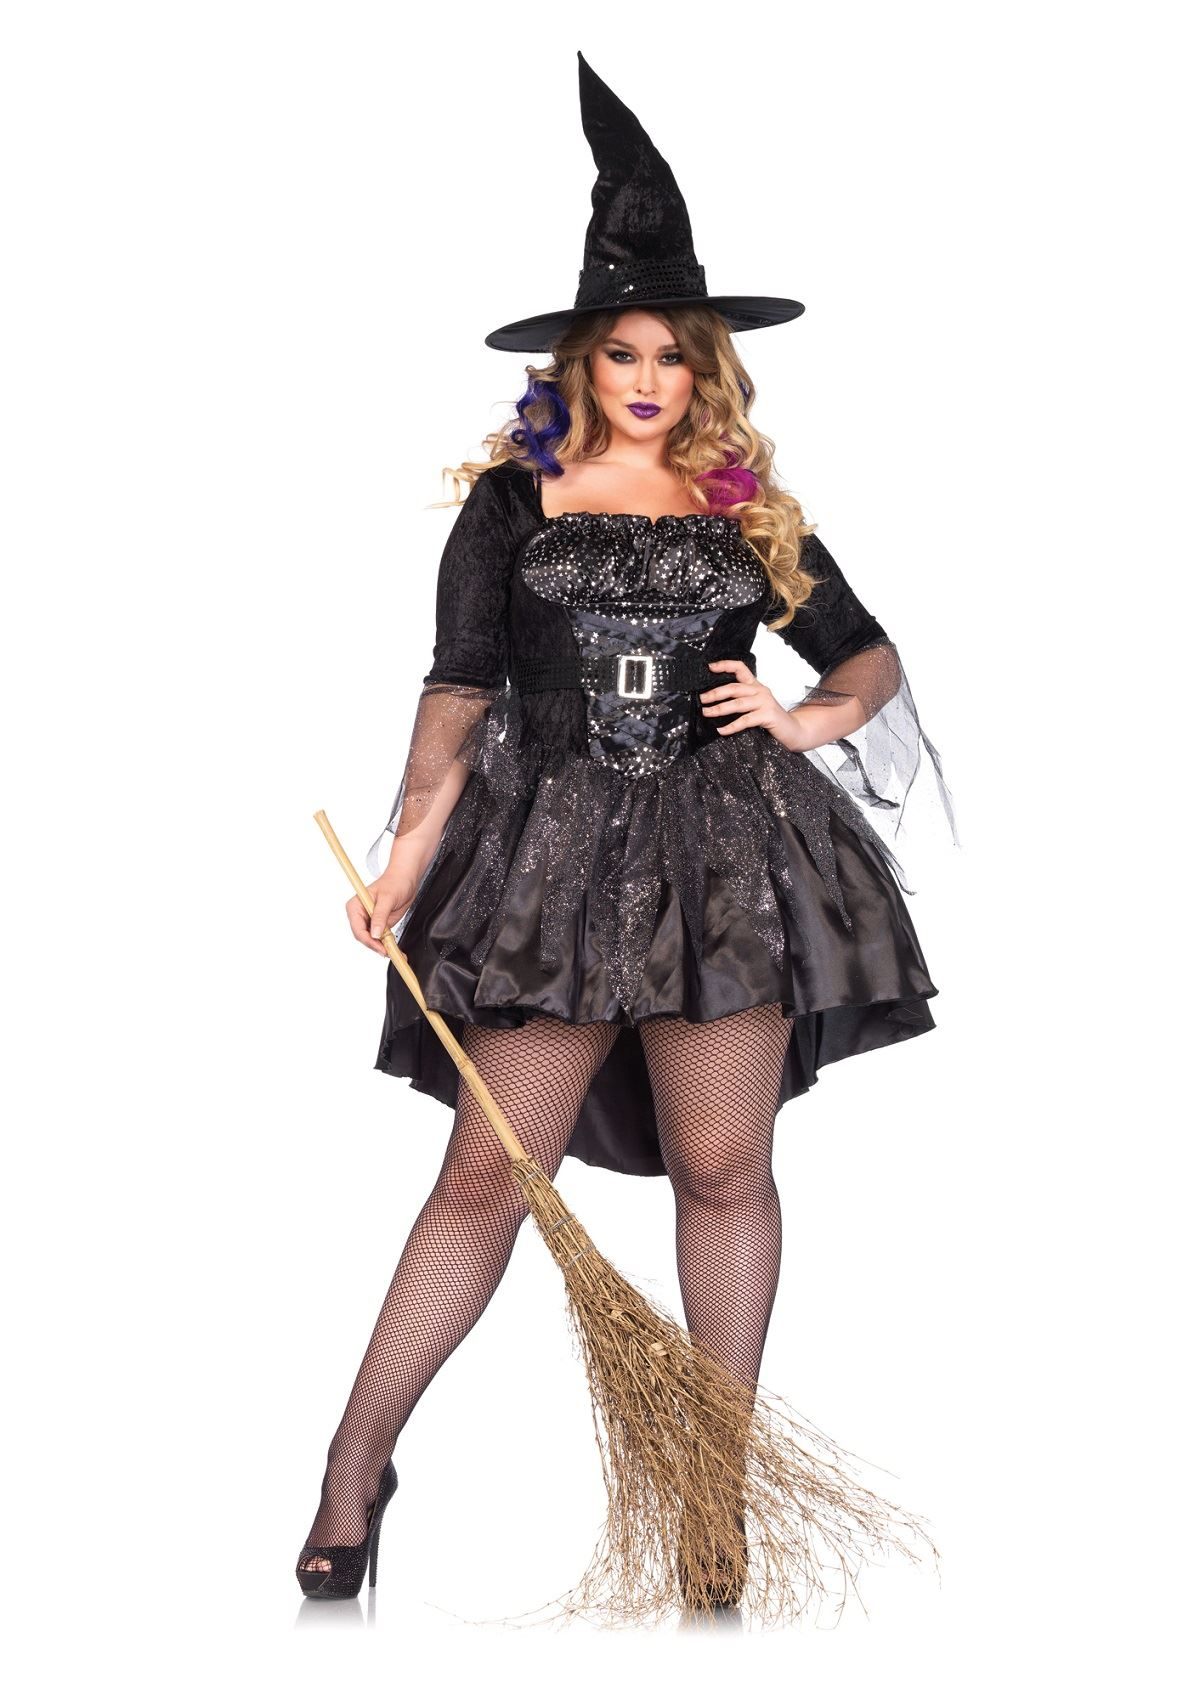 Adult Witch Black Magic Mistress Woman Costume ...  sc 1 st  The Costume Land & Adult Witch Black Magic Mistress Woman Costume | $43.99 | The ...